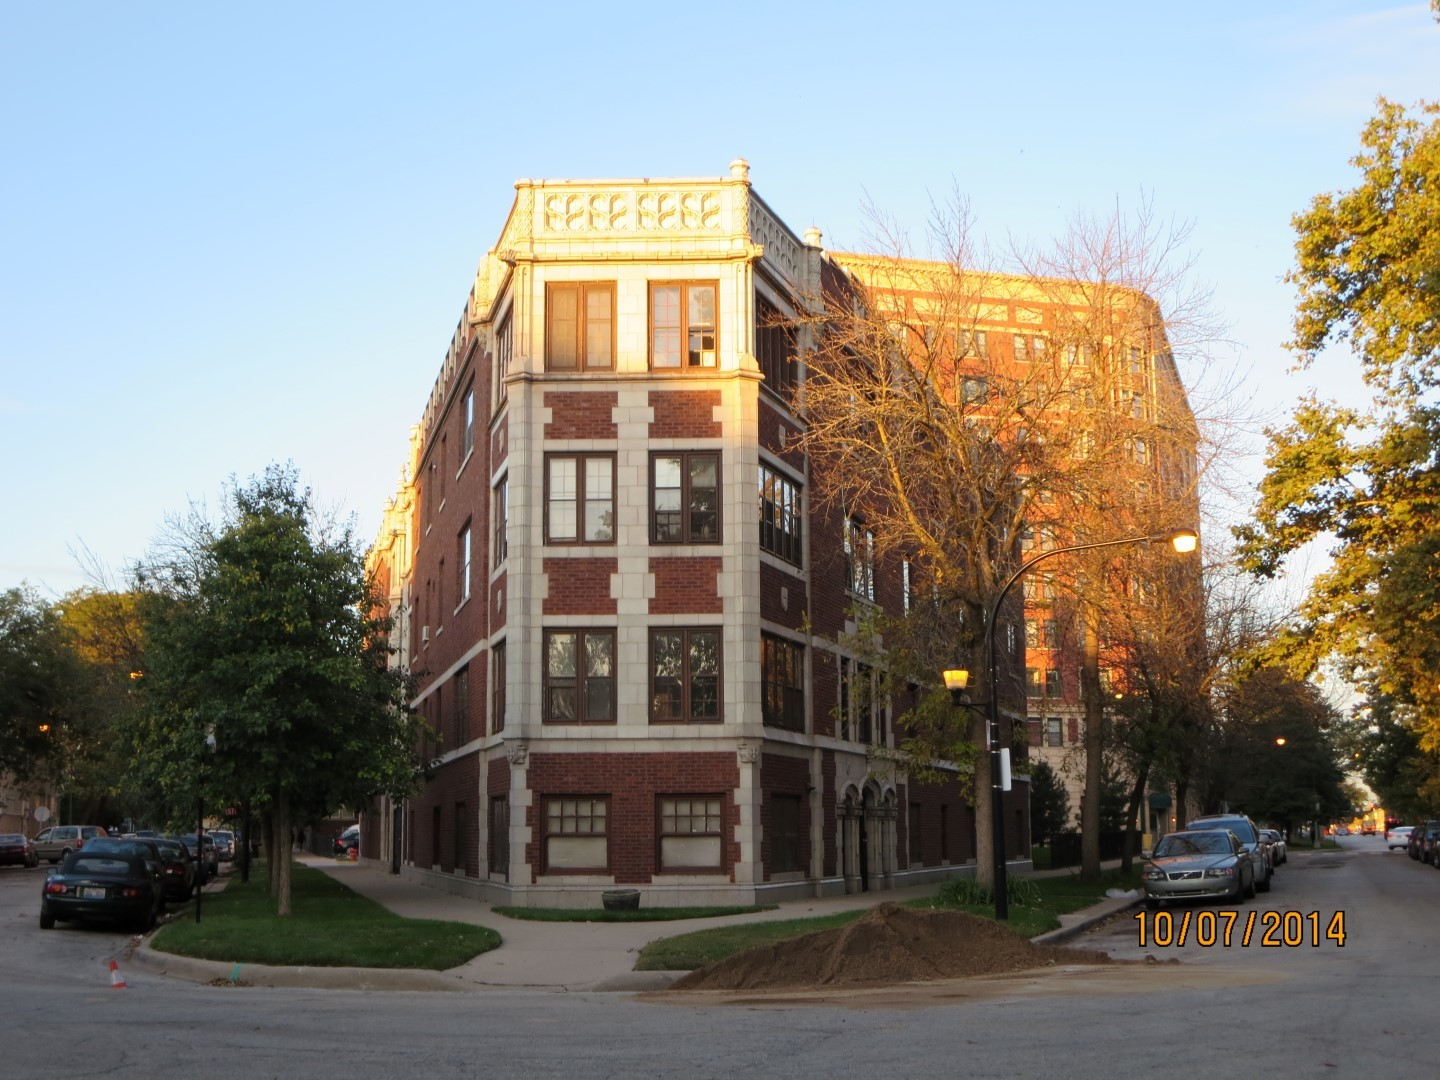 3 bedroom condo near lakefront SOLD AS-IS AND READY FOR A NEW FAMILY. OWNER OCCUPANT ONLY. NOT BANK OWNED AND NOT A SHORT SALE, OWNERS ARE LOCAL AND MOTIVATED.  THIS HOME IS BEING SOLD AS-IS, SO PLEASE INSPECT PRIOR TO SUBMITTING AN OFFER.  PLEASE NOTE: 0% TAX PRORATIONS ARE OFFERED, THE SELLER WILL PAY CURRENT AND ALL PRIOR TAX BUT 0% CREDIT FOR FUTURE BILLS.  SPECIAL WARRANTY DEED AT CLOSING. NO SURVEY.  FOR FASTER RESPONSE PLEASE USE SELLERS CONTRACT, ADDENDUM AND DISCLOSURES UNDER DOCUMENTS.